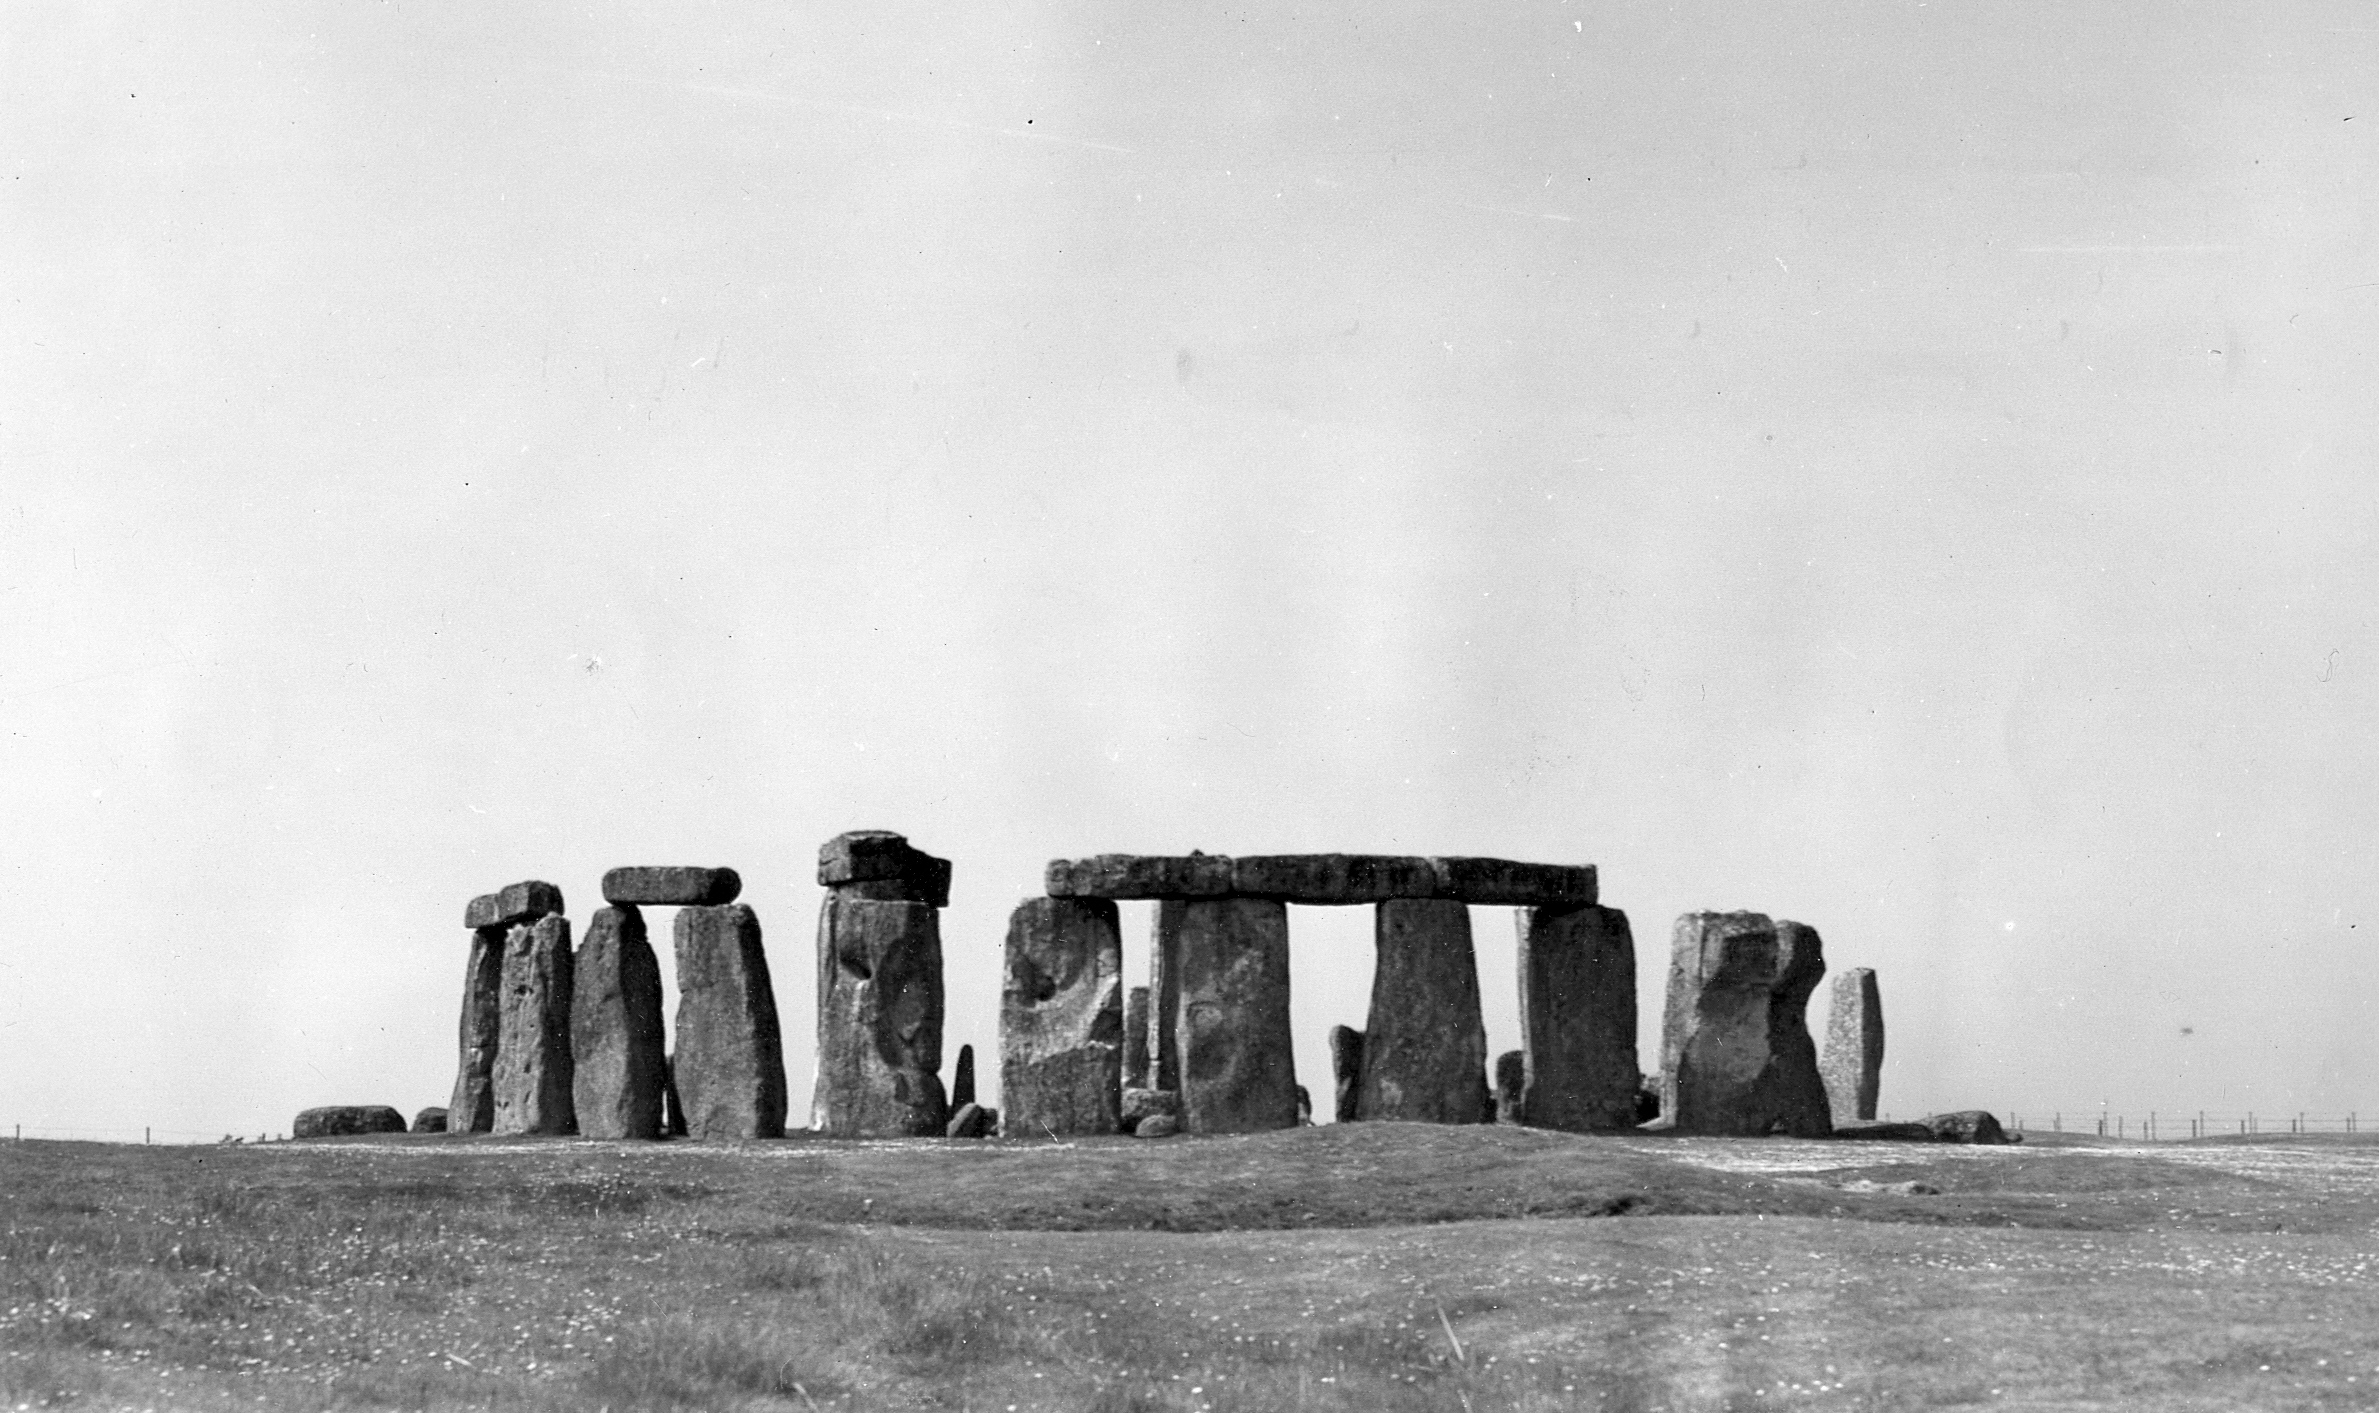 stonehedge thesis A very brief overview of stonehenge history and calendrical theory - dani funk - presentation / essay (pre-university) - english language and literature studies - culture and applied geography - publish your bachelor's or master's thesis, dissertation, term.